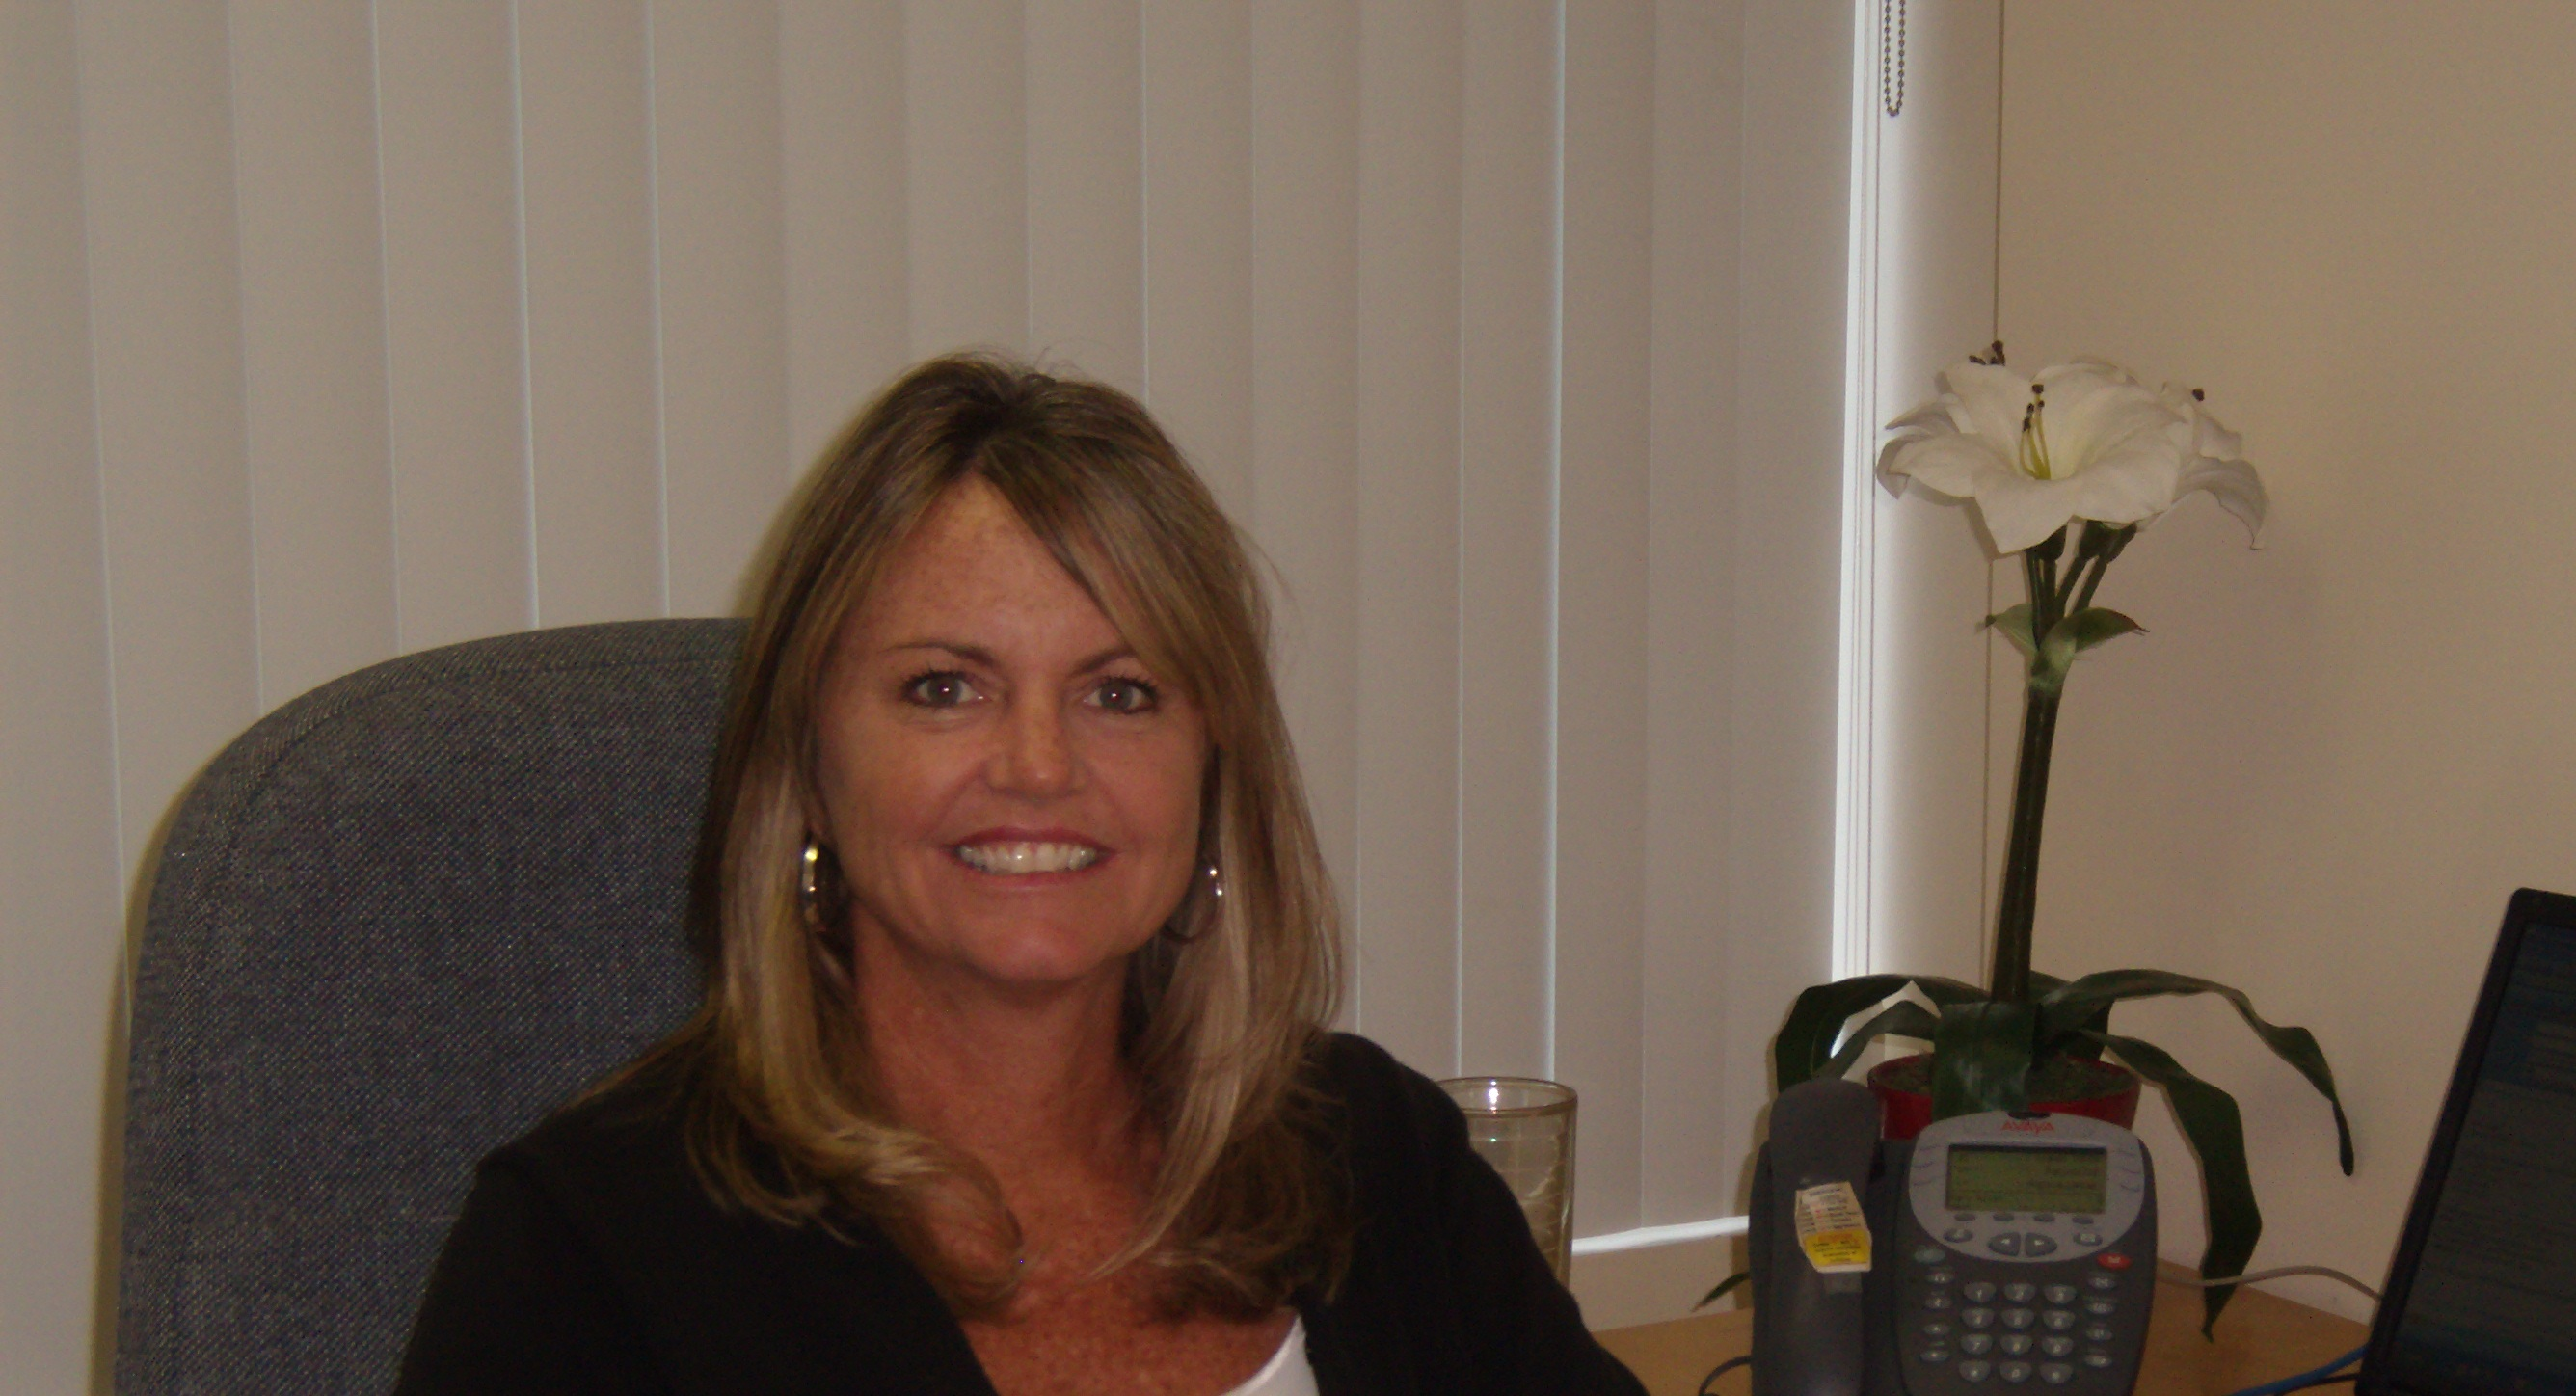 Mary Allen, Director of Vision Services at her Desk